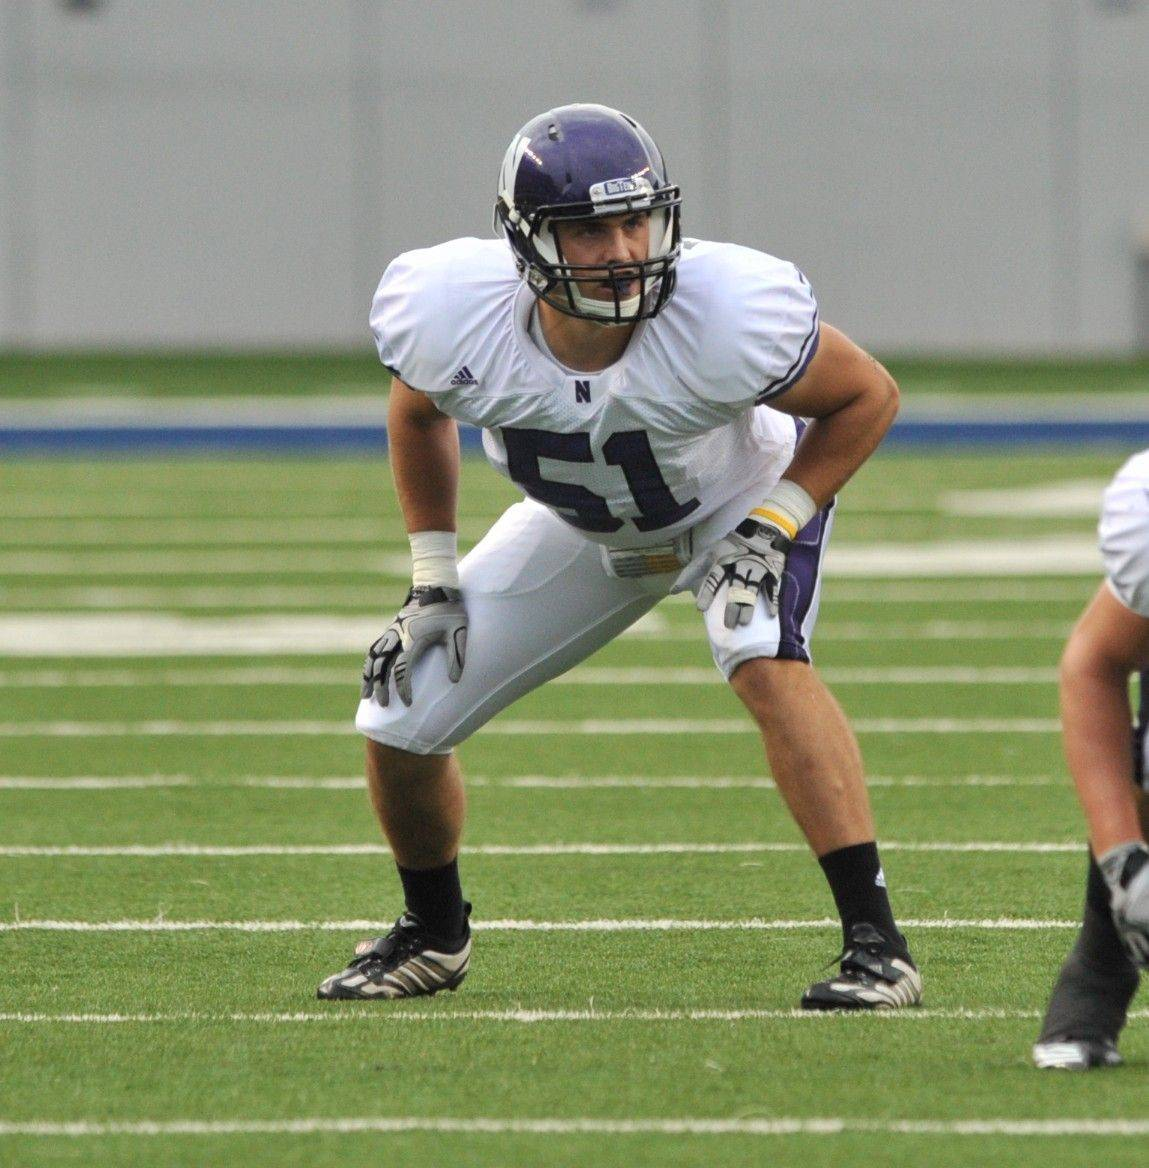 Northwestern weakside linebacker Bryce McNaul against Rice earlier this season.